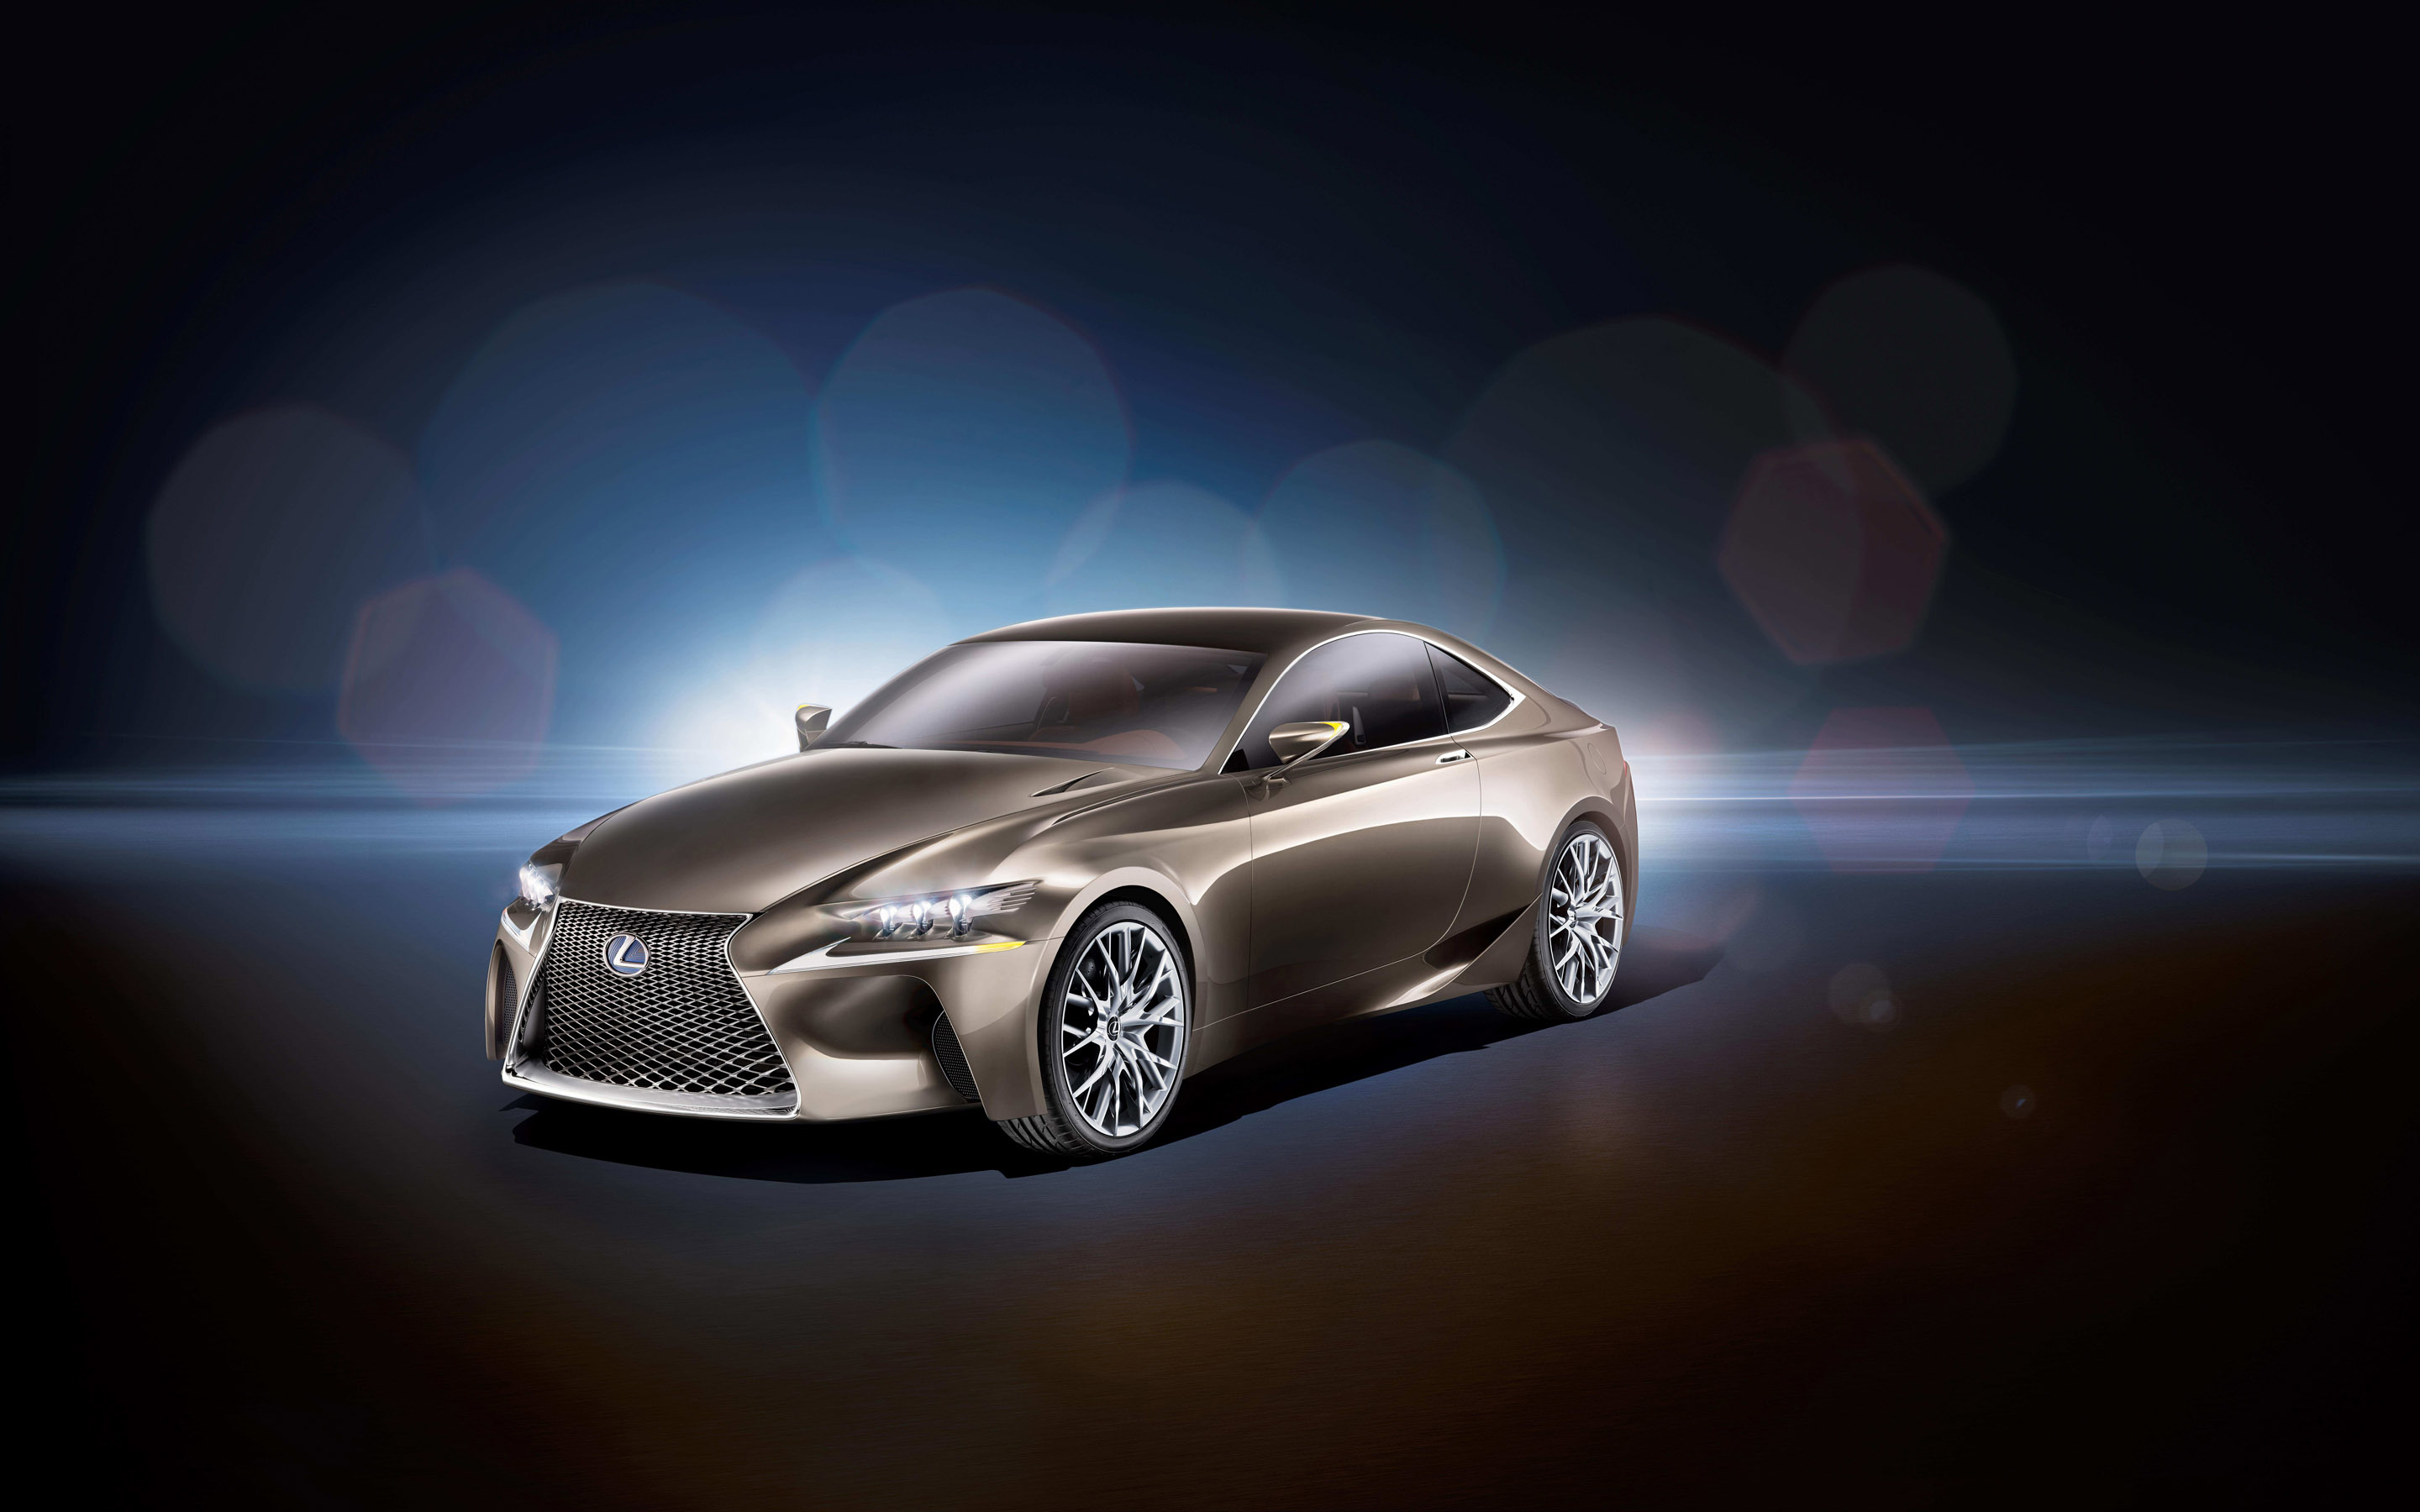 Hd wallpaper all - 2015 All New Lexus Rc F Wallpapers Hd Wallpapers